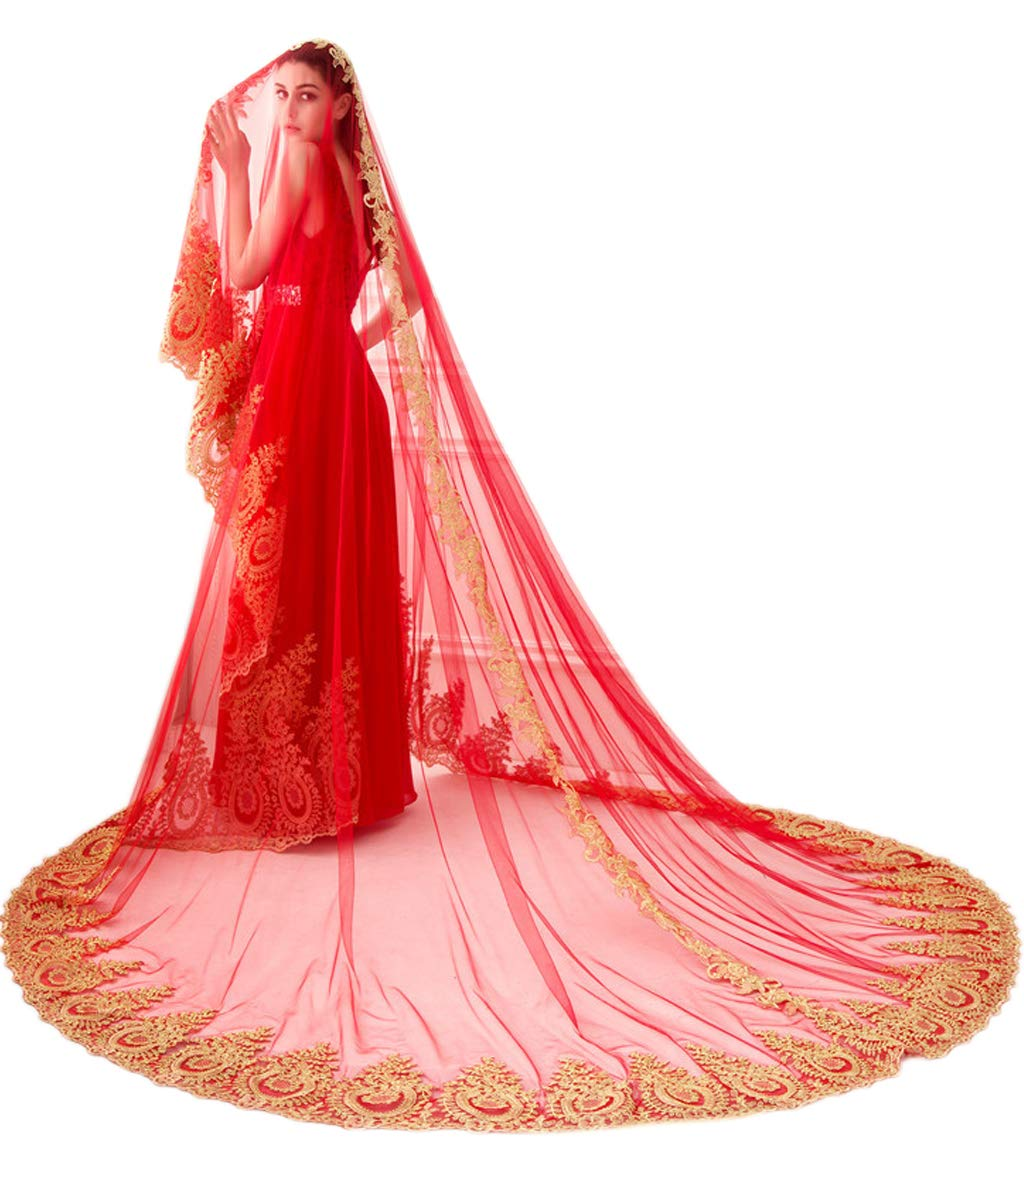 Mauwey Womens Cathedral Long 350 cm/137 inch Gold Sequined Lace Edge Red Veils Wedding Veils Bridal Veils Sari